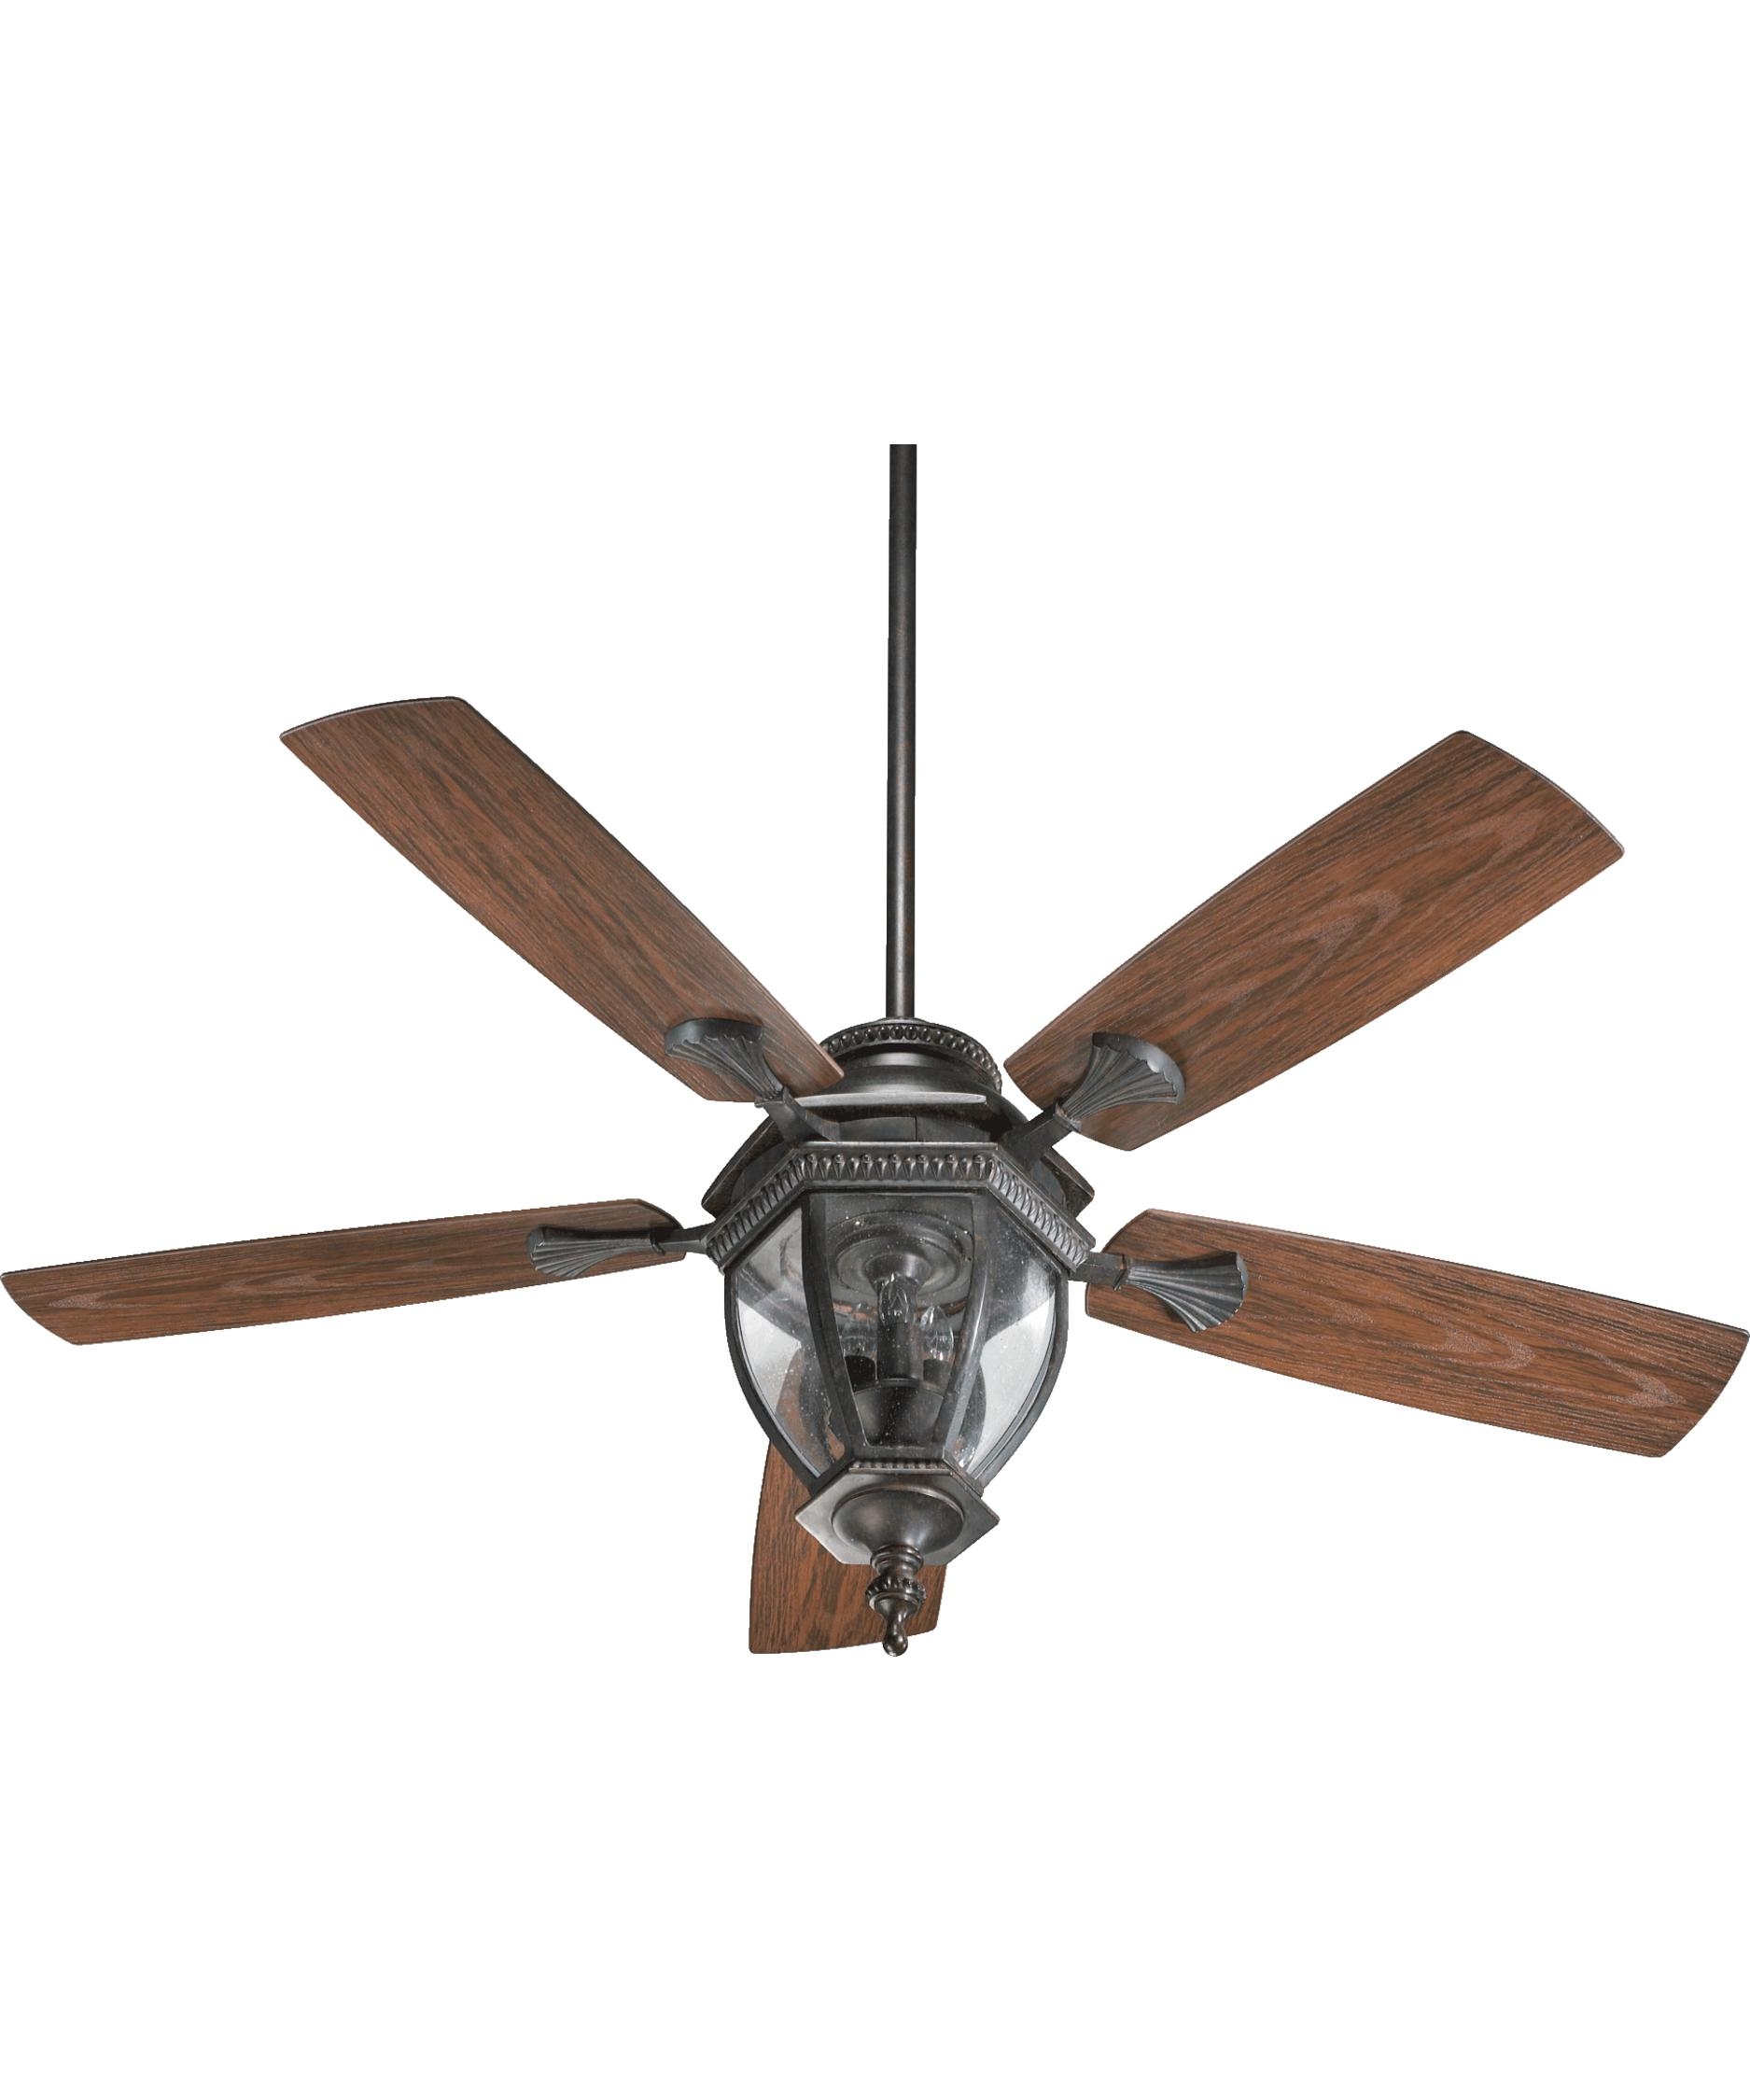 Murray Feiss Ceiling Fan Light Kit: Quorum International 145525 Baltic Patio 52 Inch Ceiling